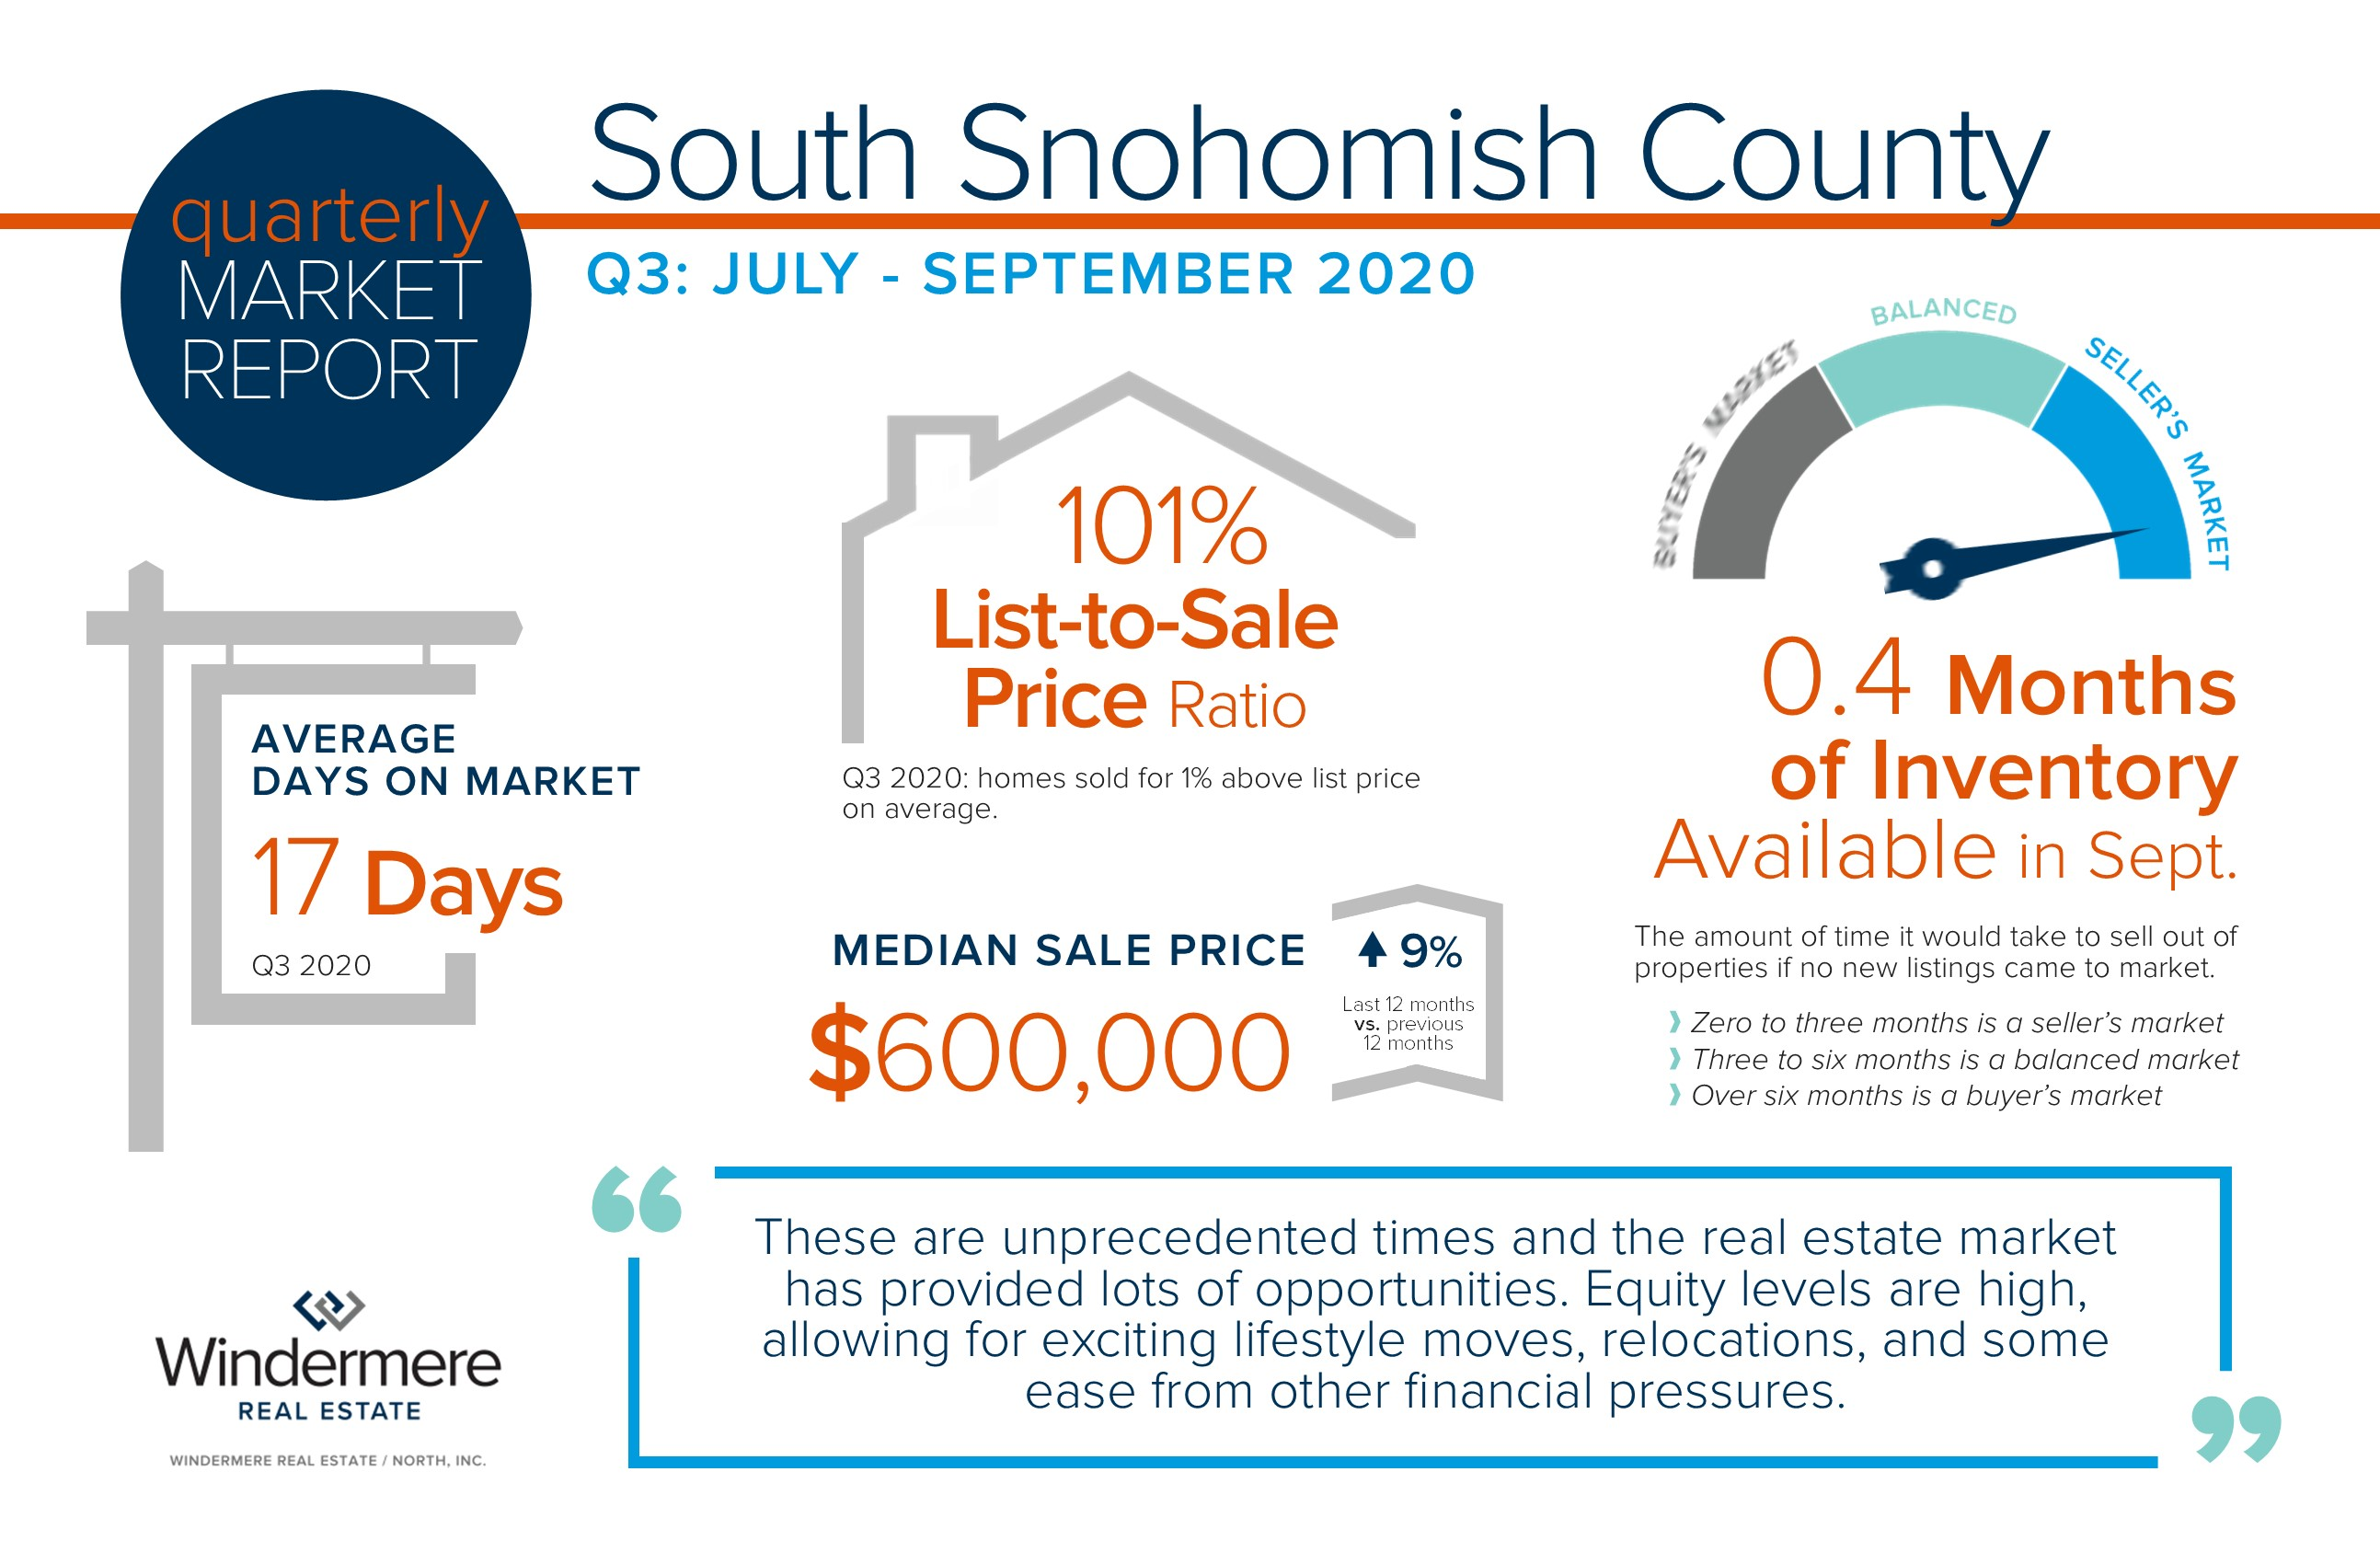 South Snohomish County Quarterly Market Trends – Q3 2020